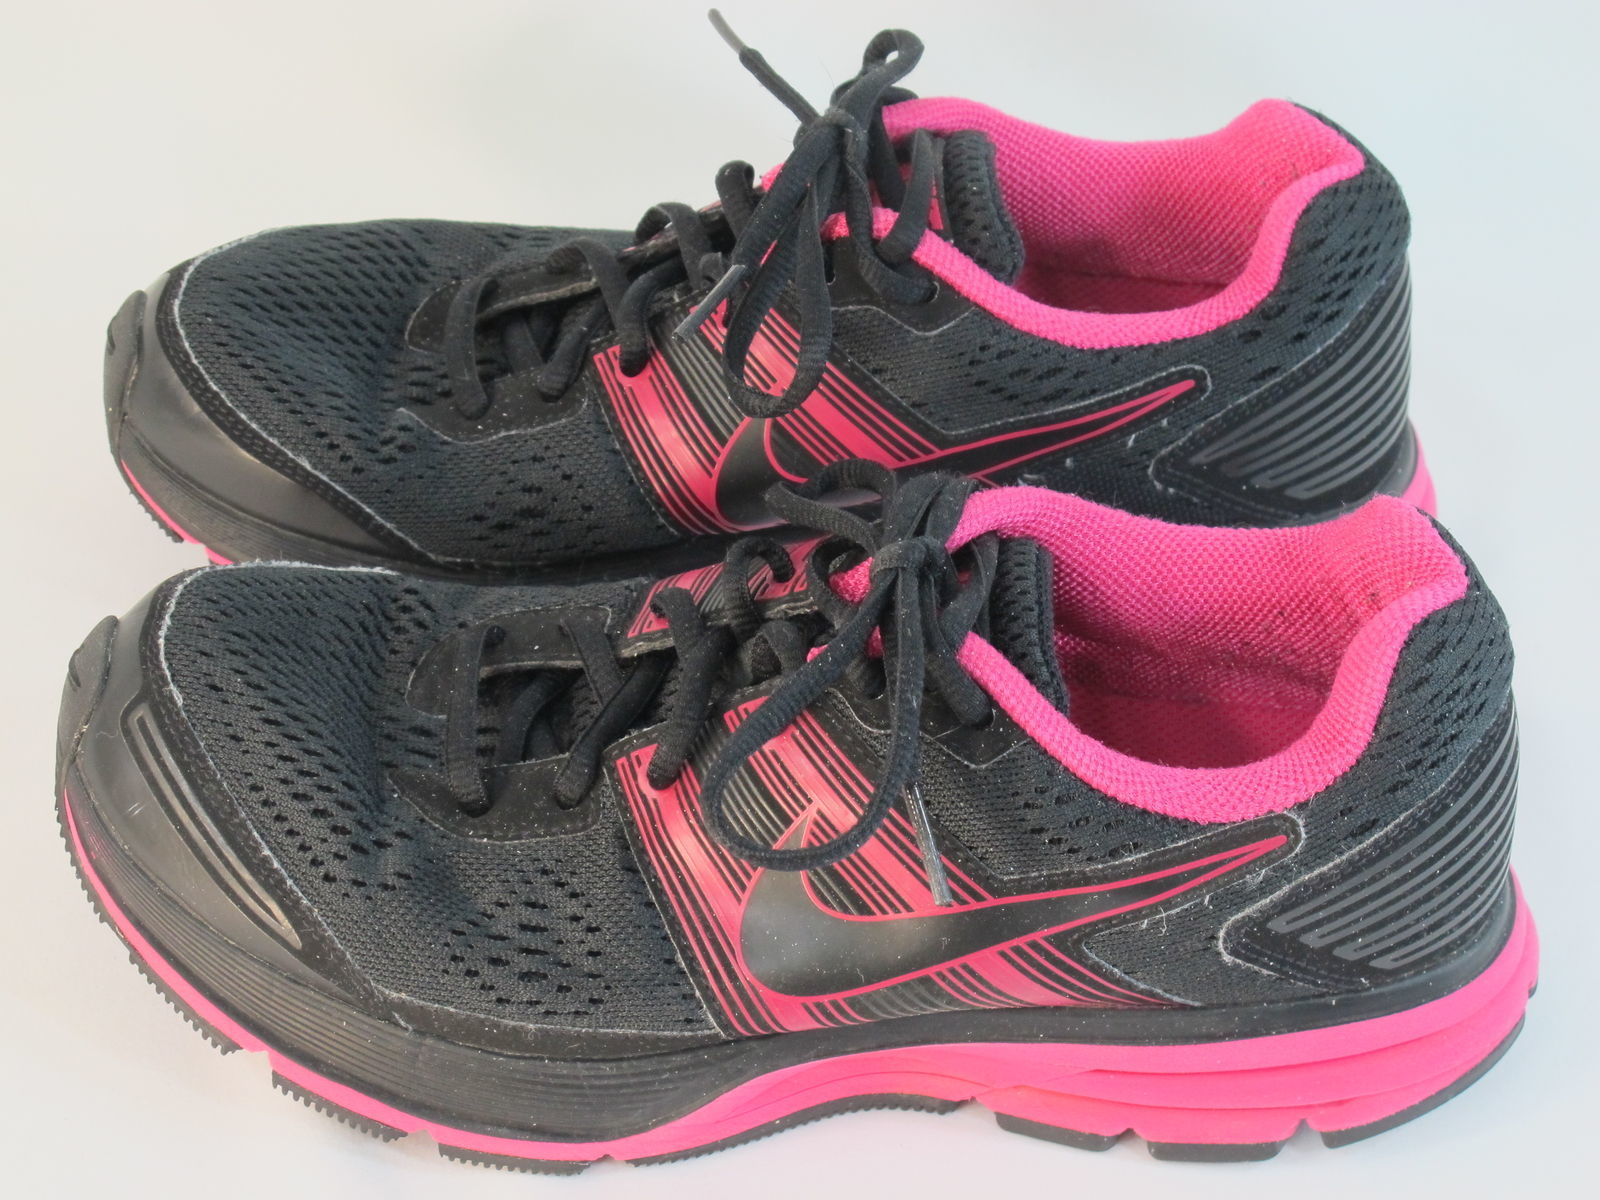 ae7f5215b6d Nike Air Zoom Pegasus+ 29 Running Shoes Women s Size 8.5 US Excellent Plus